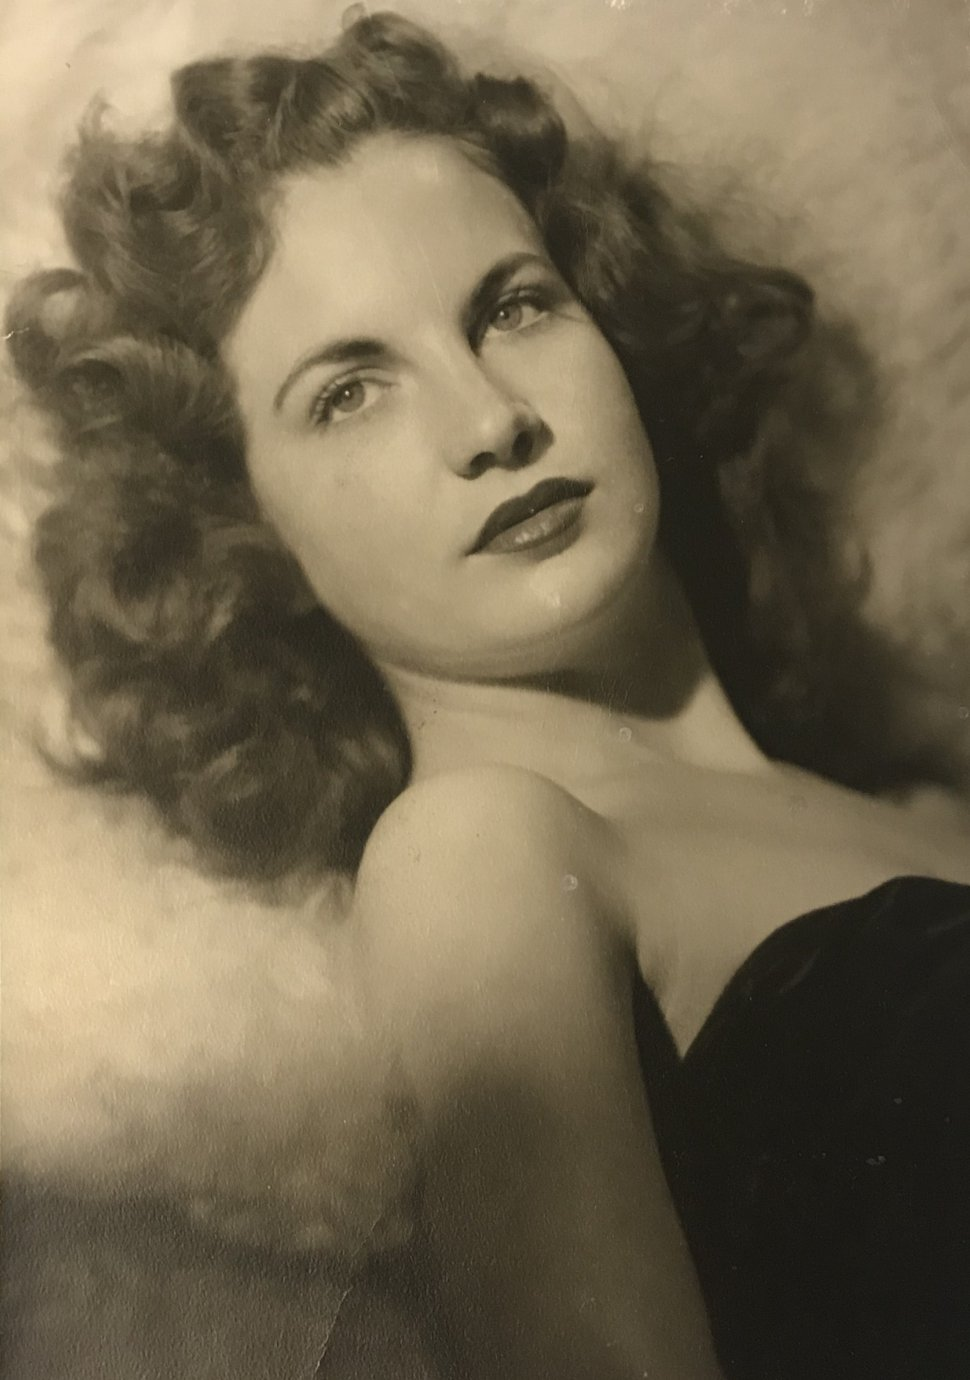 (Courtesy photo) Alexis Cooper's maternal grandmother, Irene Jenson, was also a beauty queen and Kappa Delta sorority sister when she was at Utah State University in the 1940s.